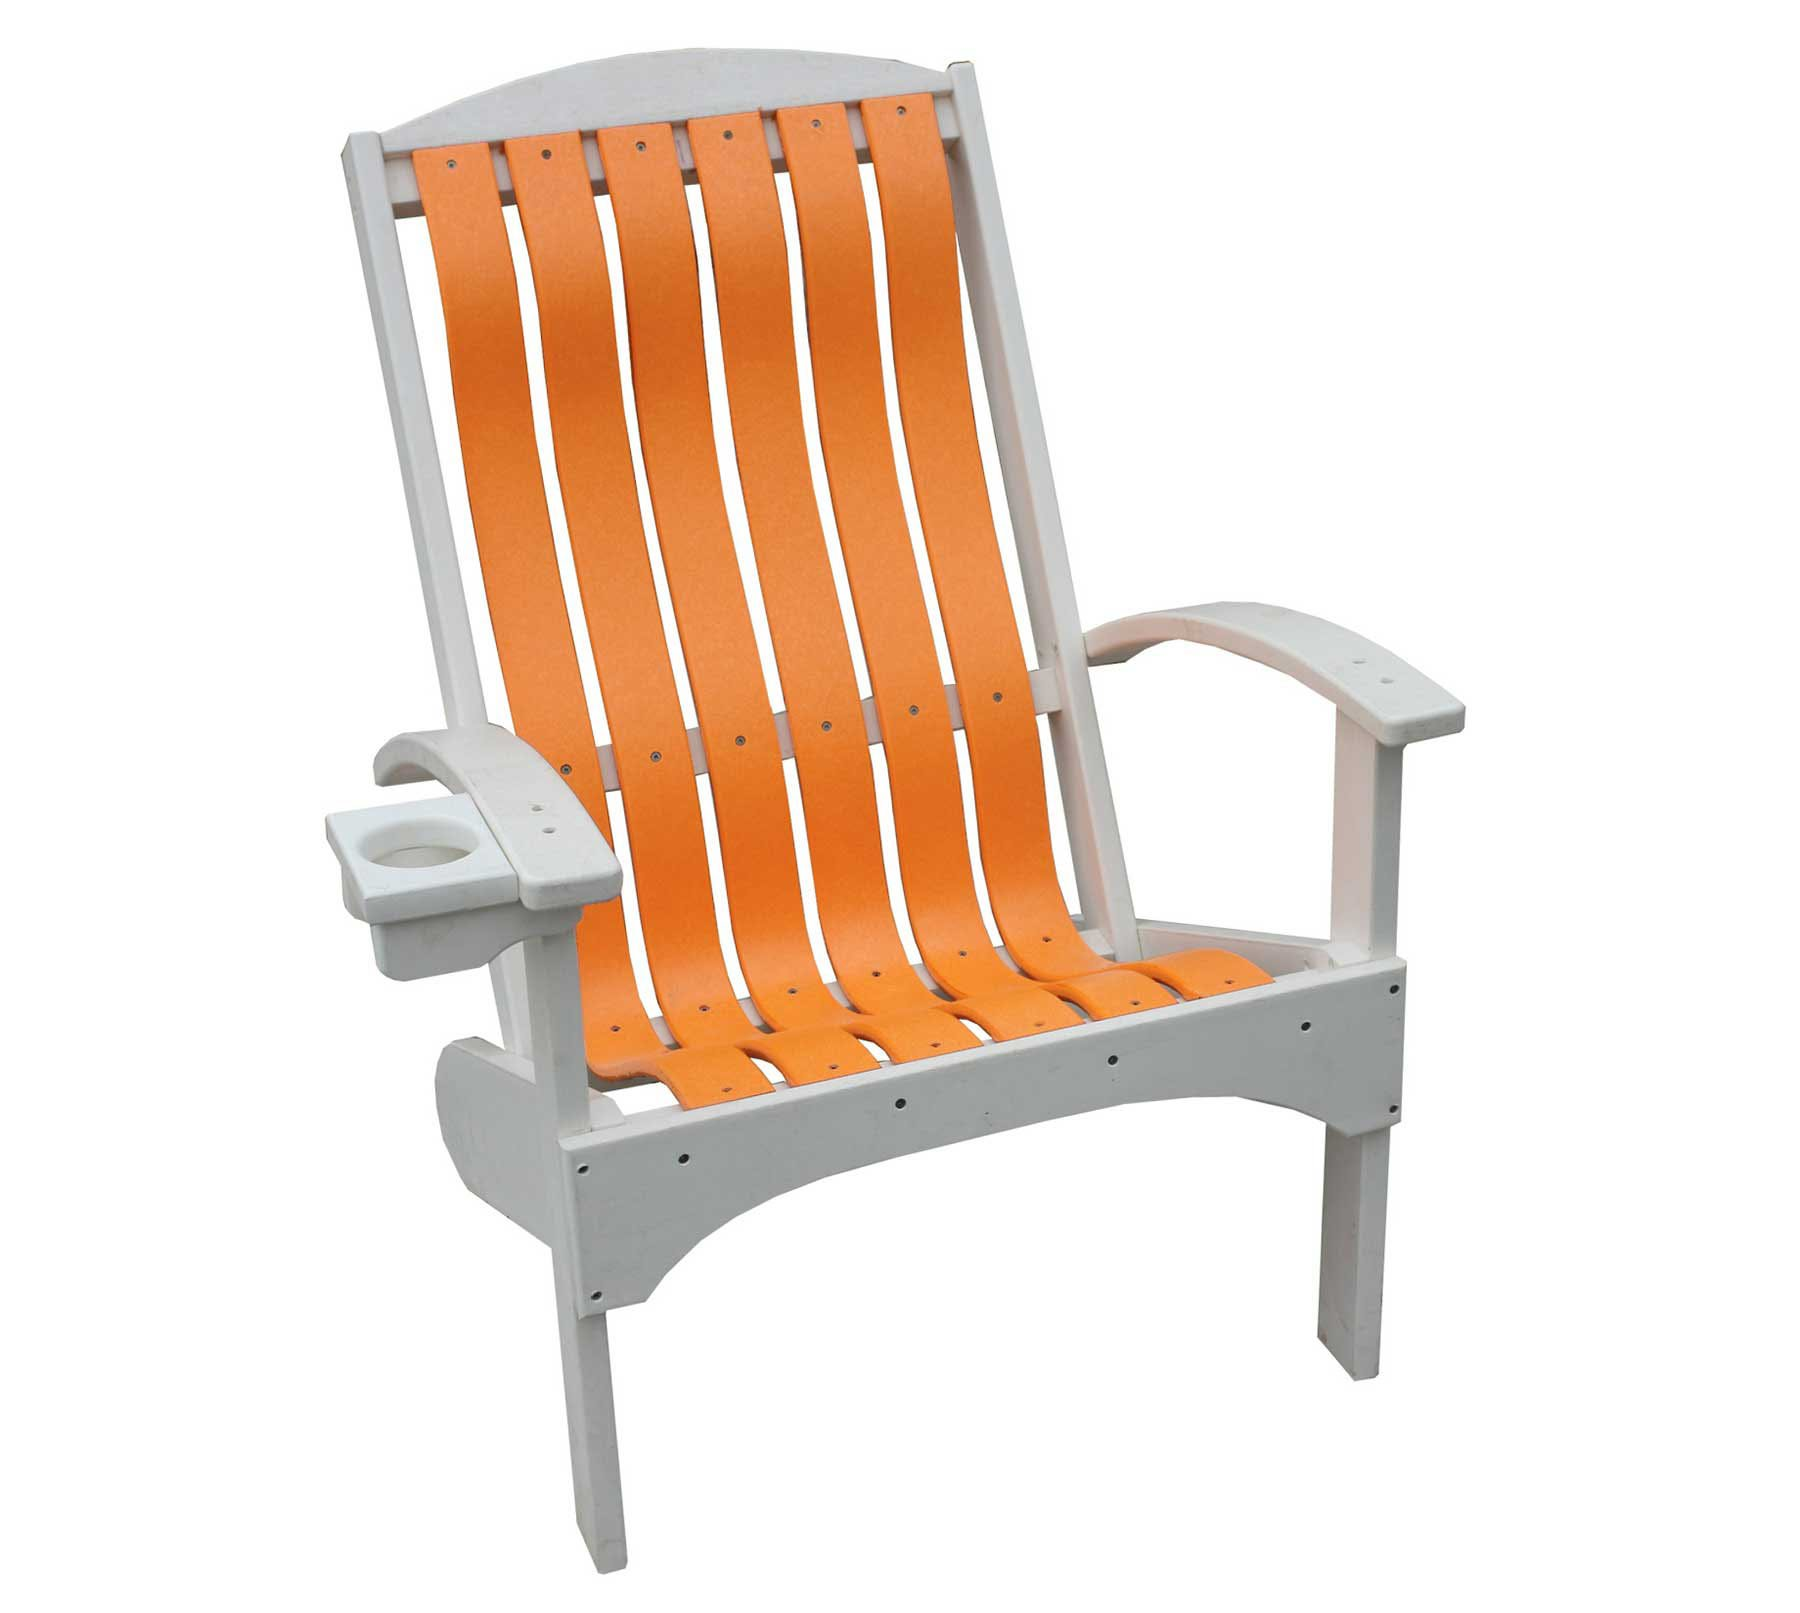 The Beach Chair From Signature Fine Furnishings